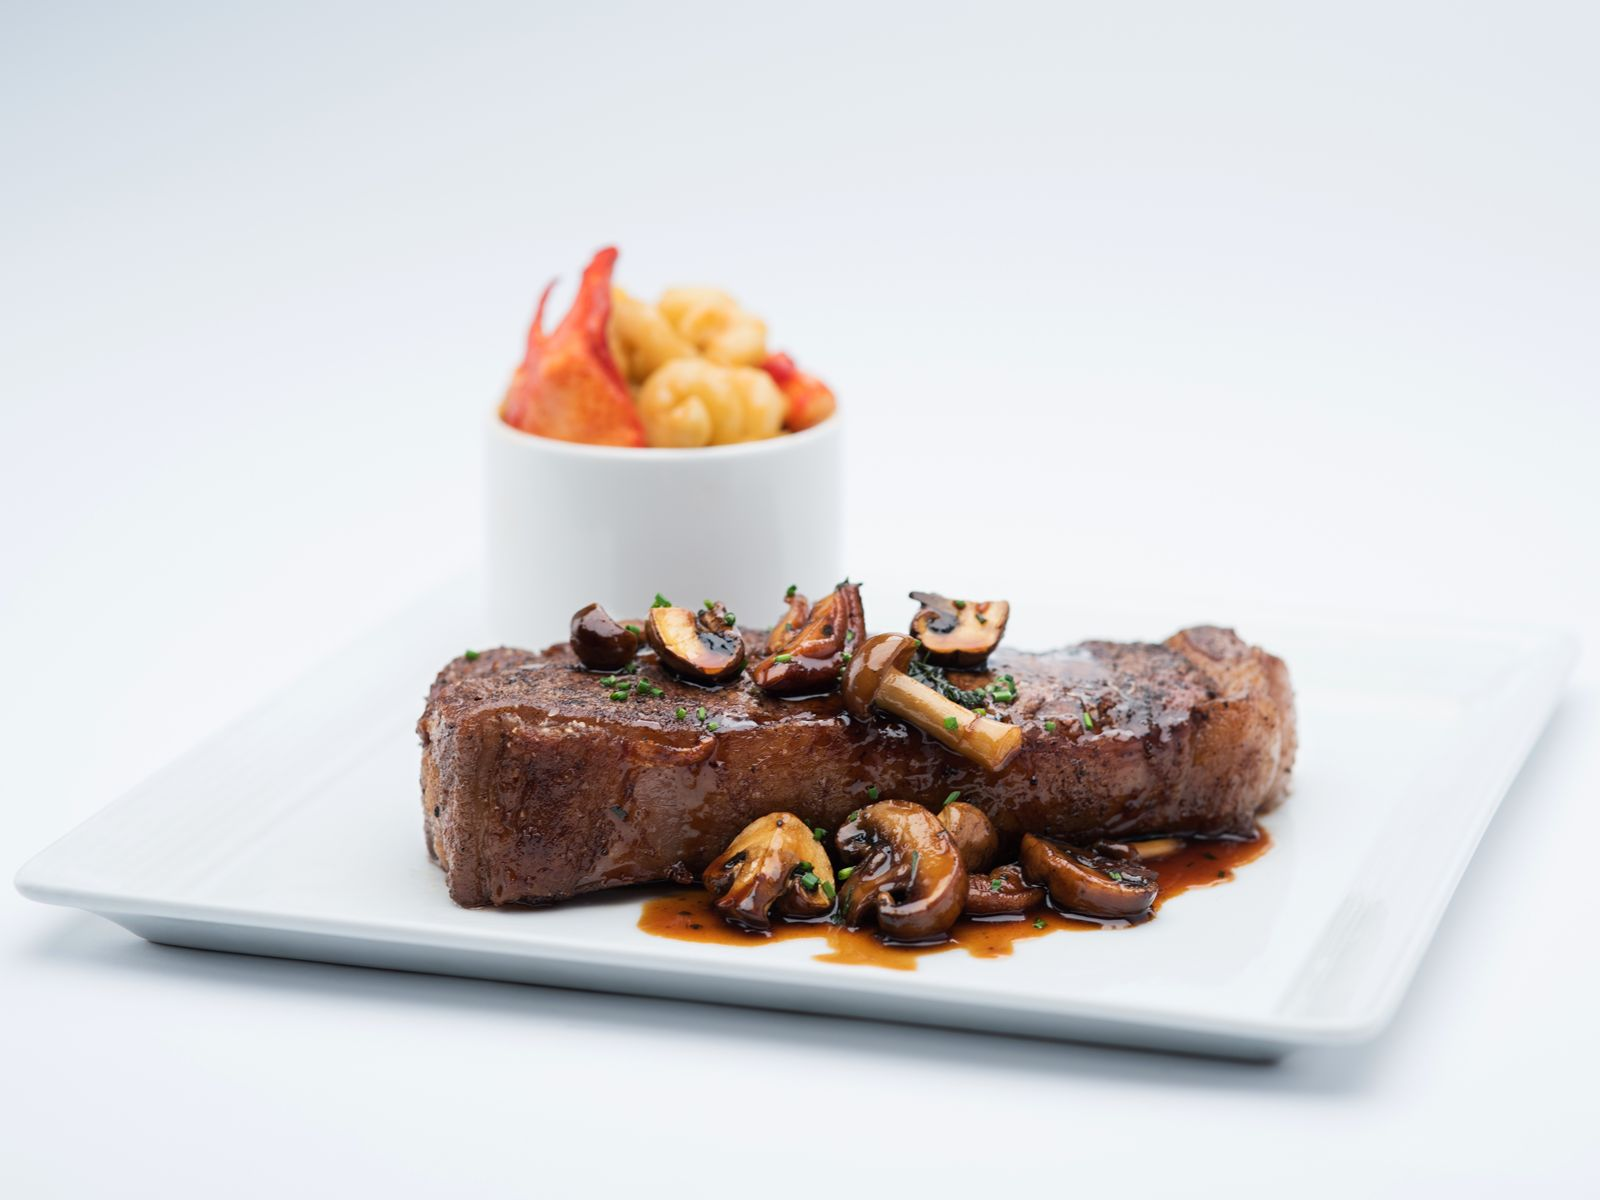 Roy's Restaurants Introduces Menu Changes Including Three New Entrees and Renewed Focus on Local Chef's Creations